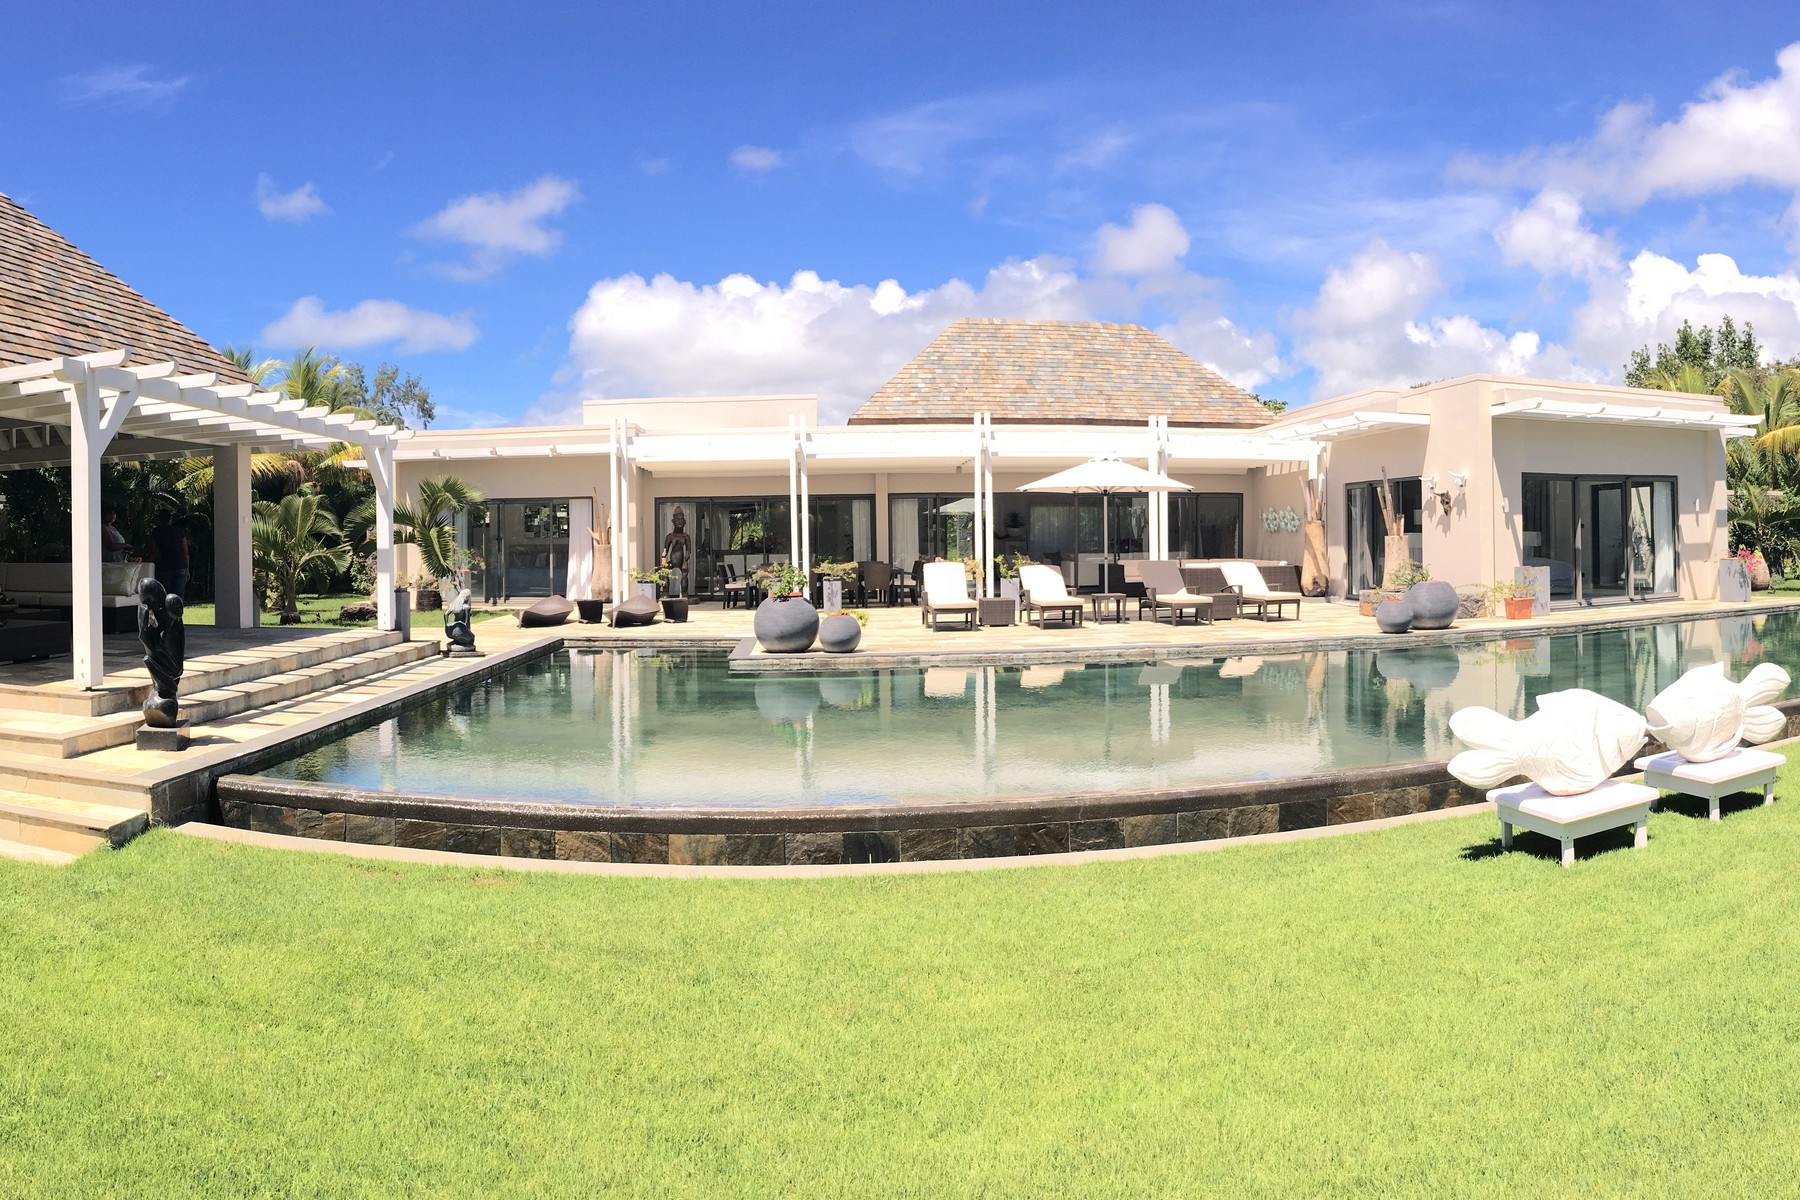 Single Family Home for Sale at Solaia 2503, Golf View Villa Other Riviere Du Rempart, Riviere Du Rempart Mauritius